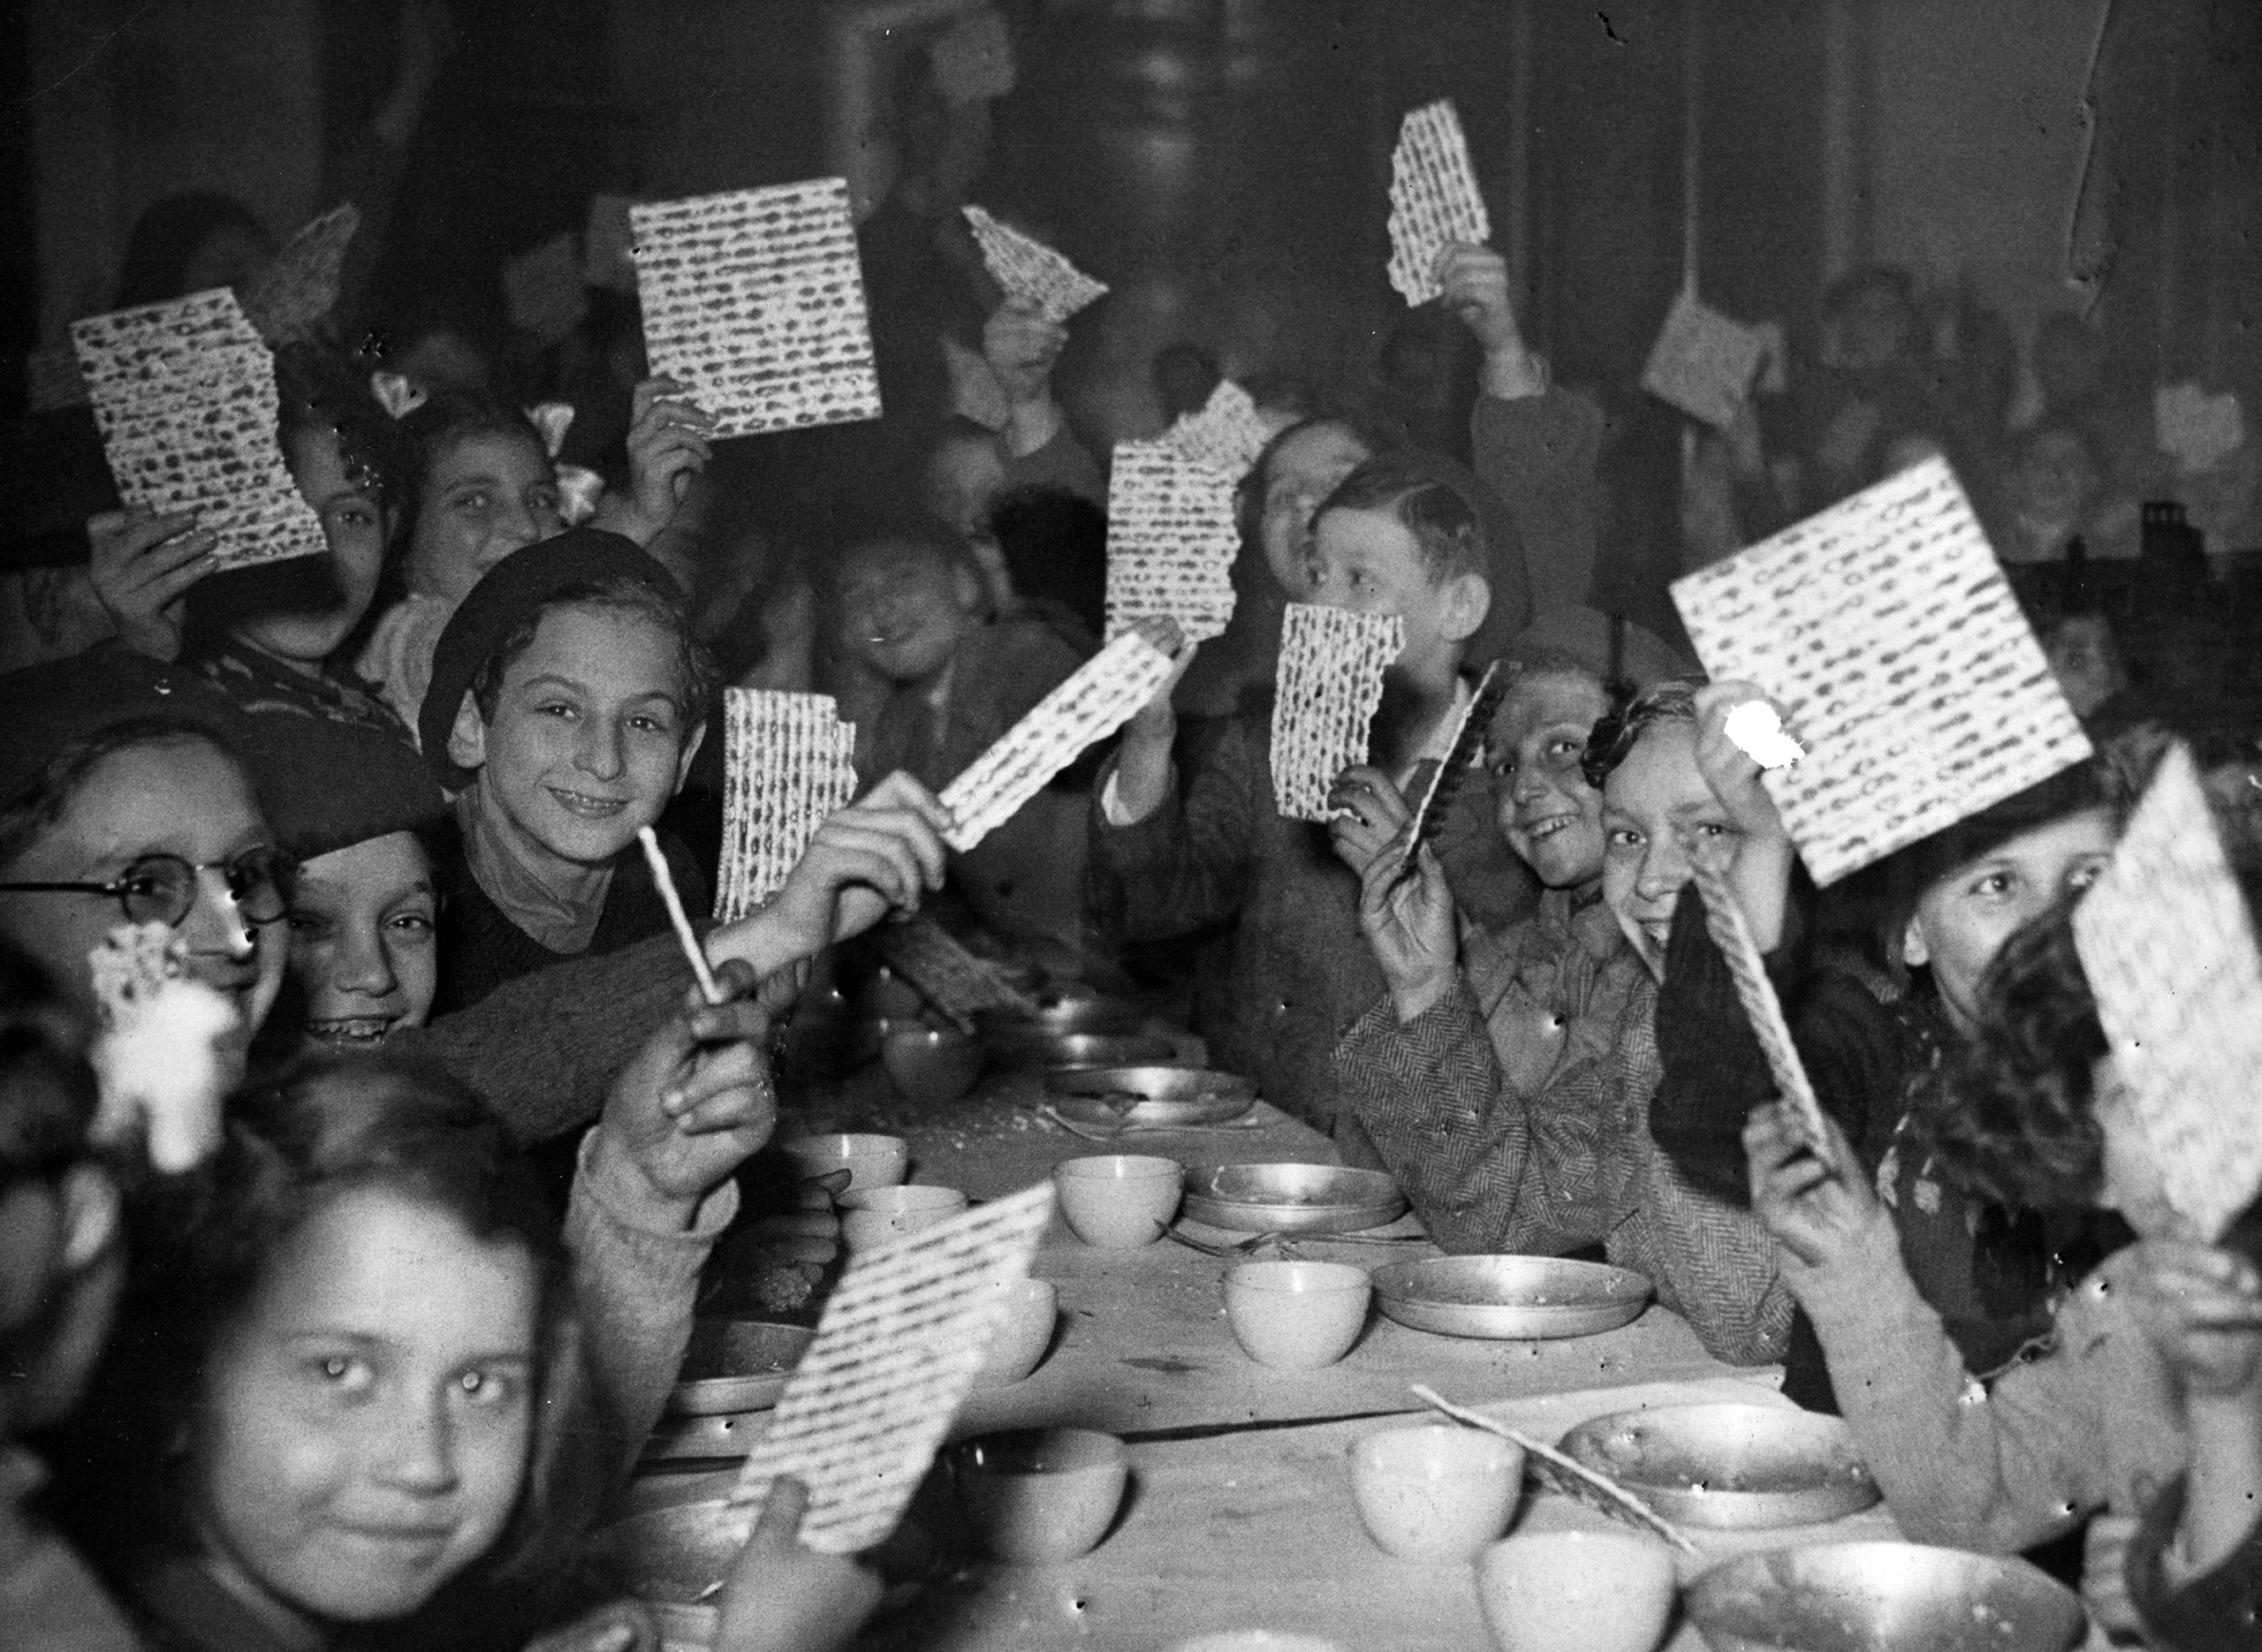 Young refugees at a Passover Seder holding up their matzot with pride at a children's canteen run by the JDC partner Federation des Societes Juives en France. France, c. 1947. Photographer unknown.